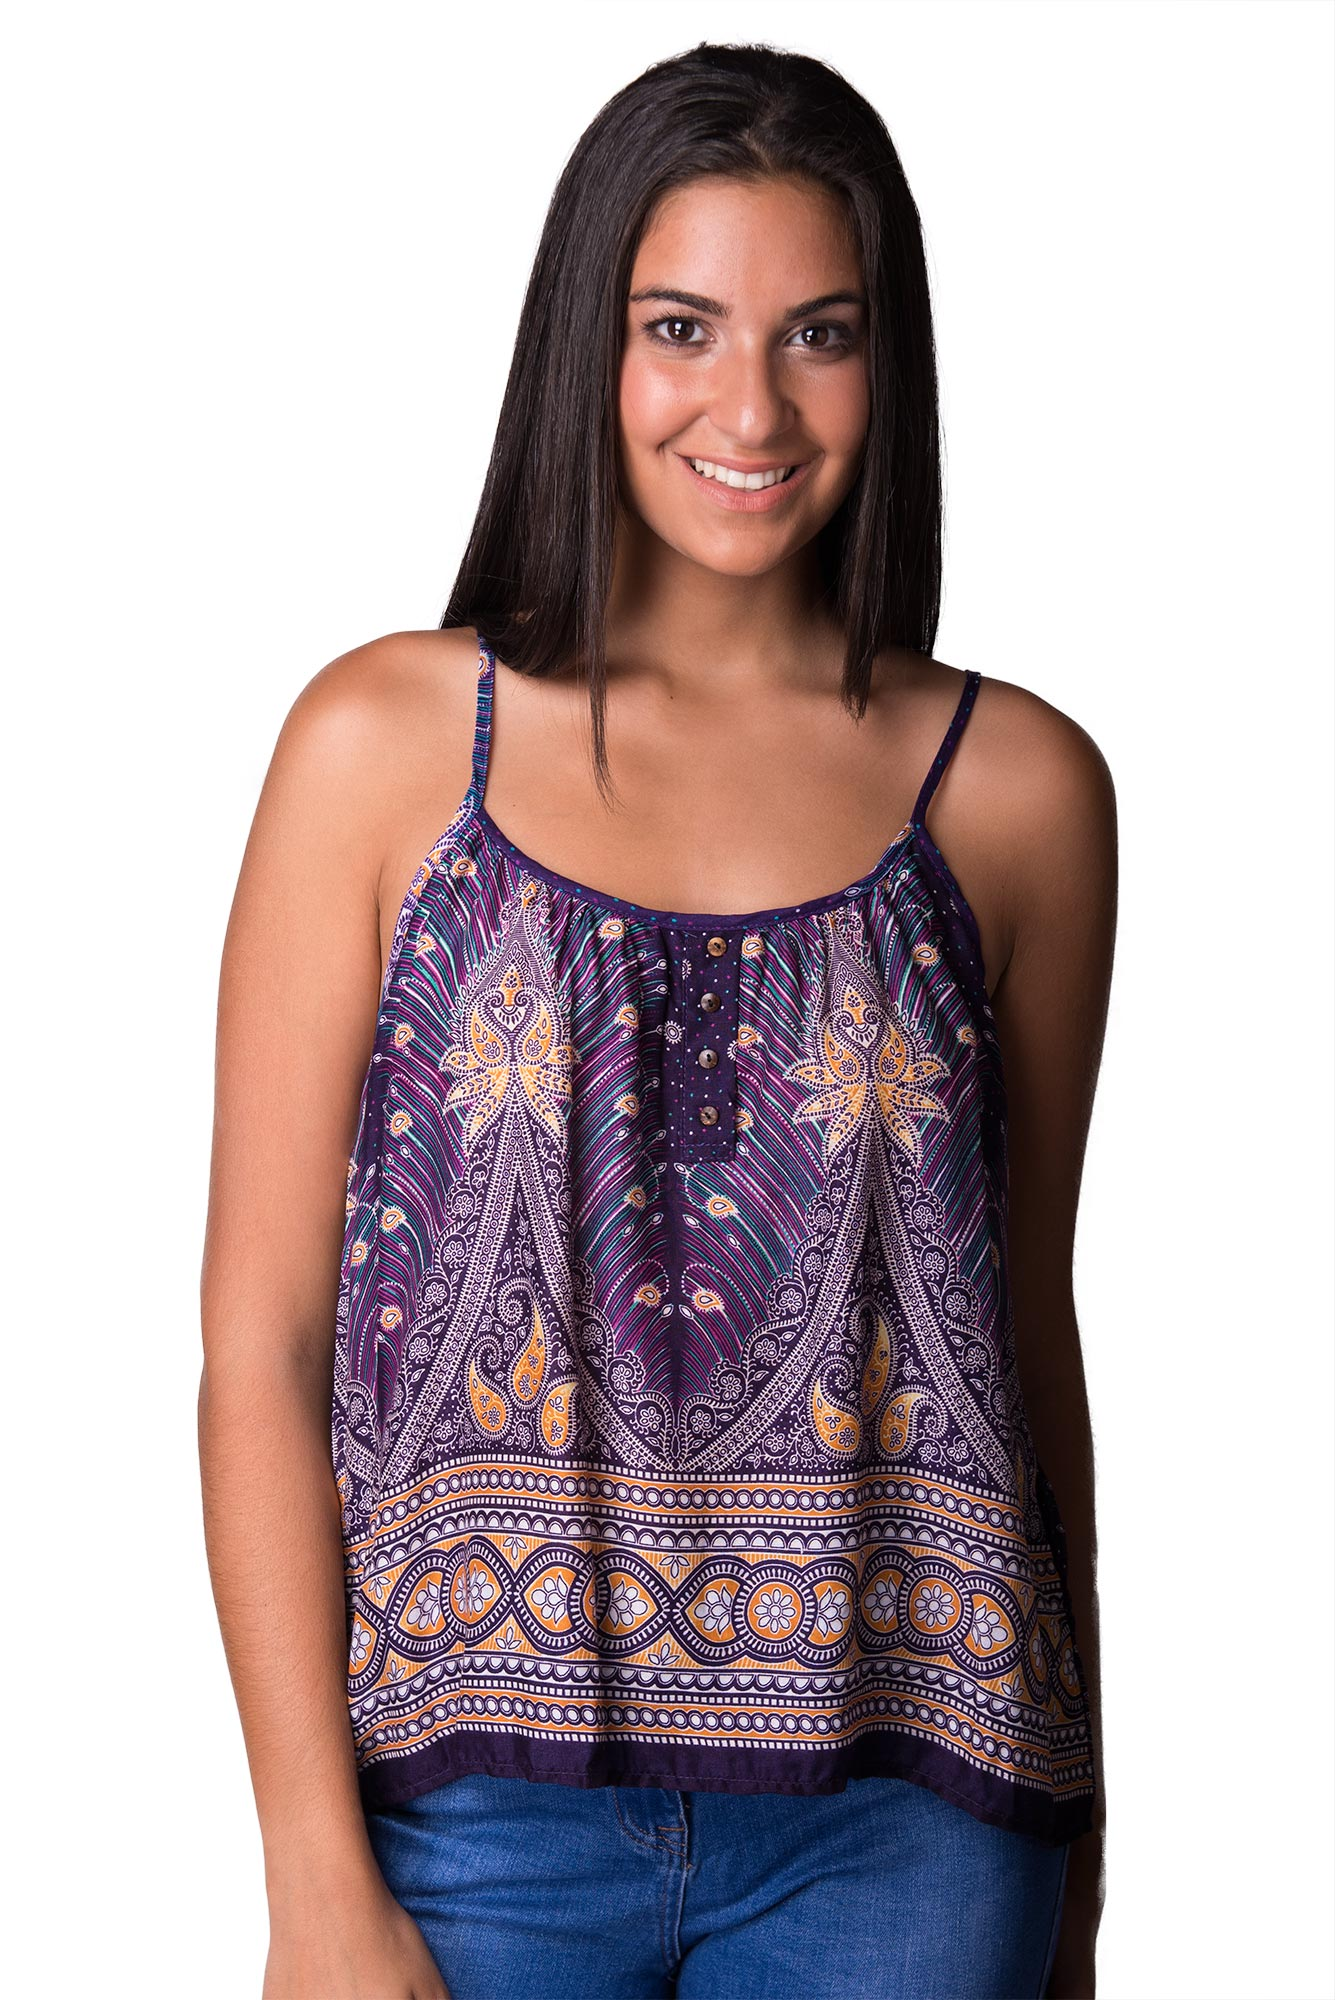 Cami Top Peacock Print, Purple - 4483U